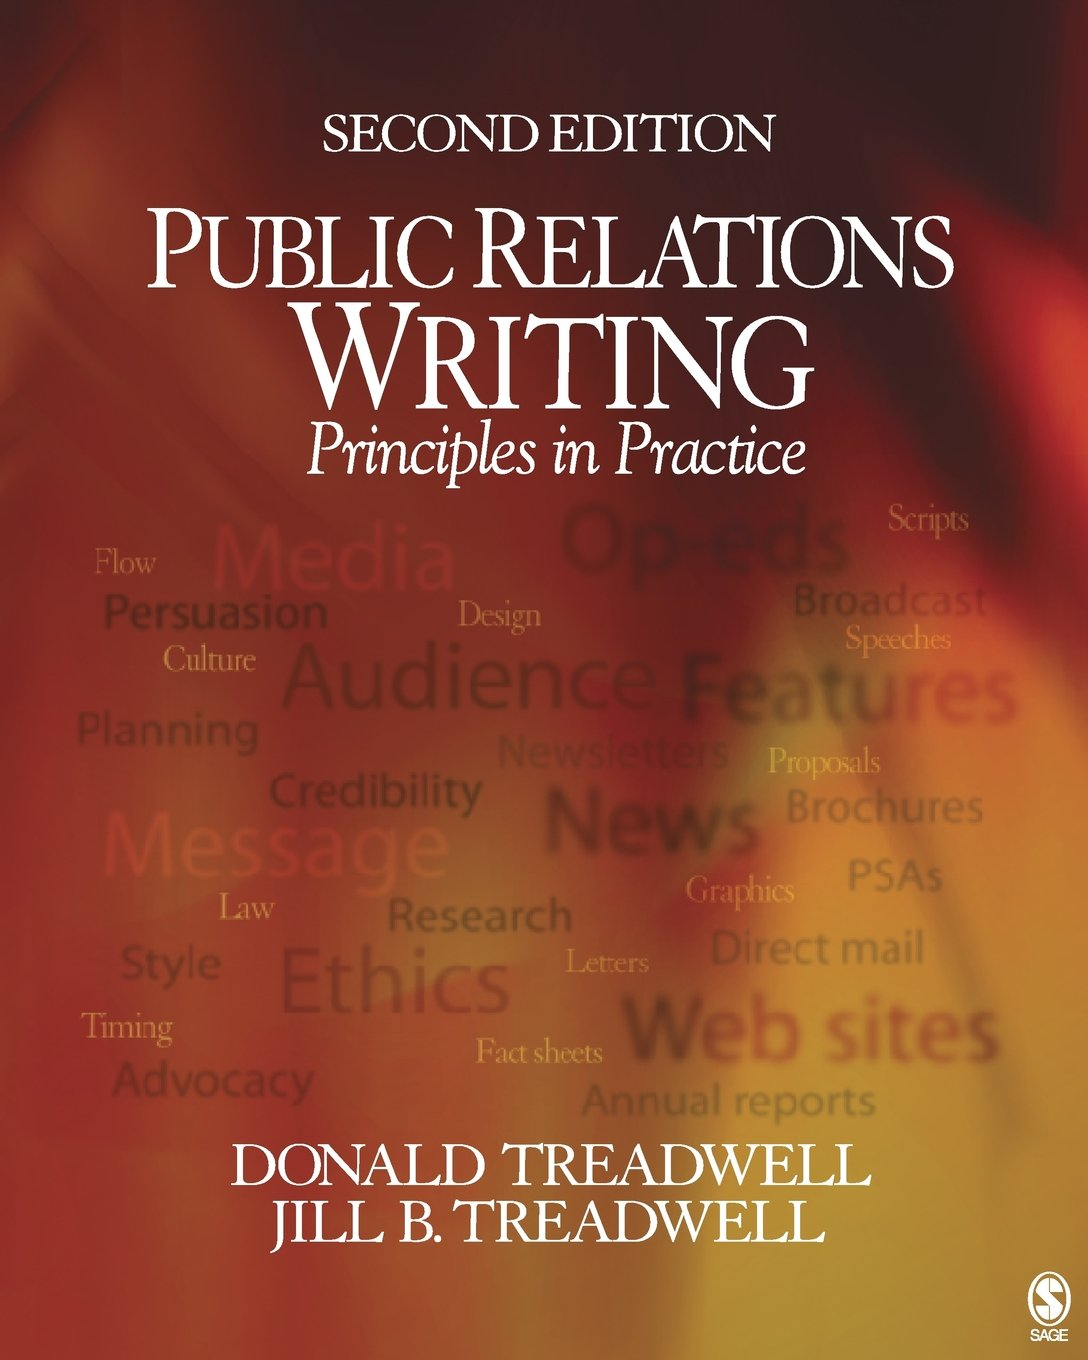 Public Relations Writing: Principles in Practice by Brand: SAGE Publications, Inc